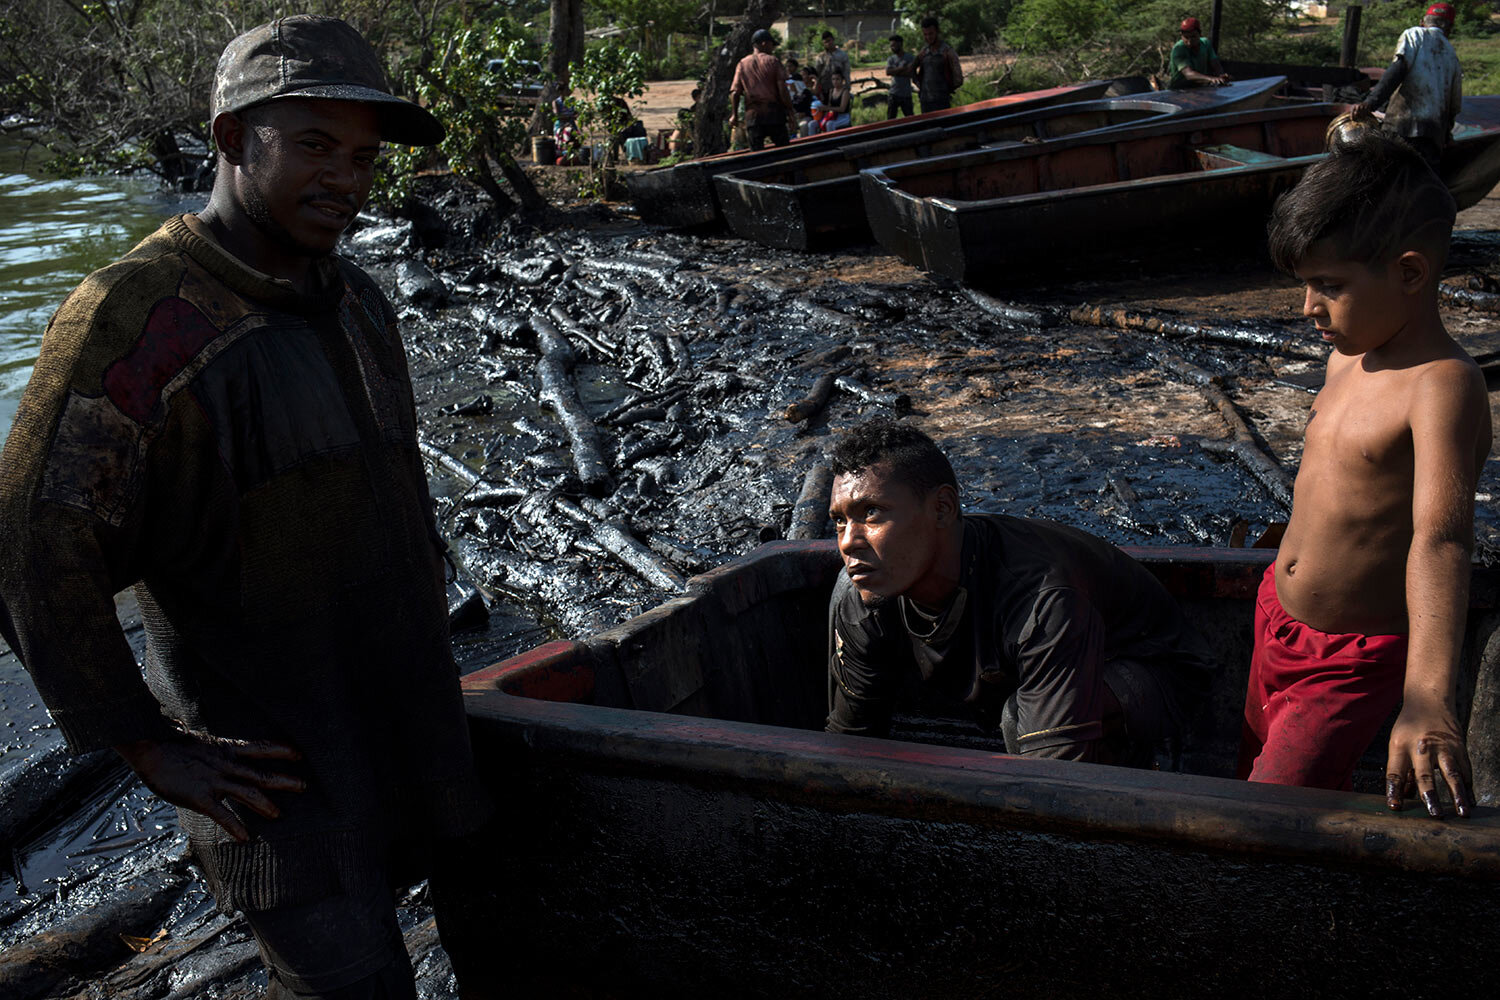 Fishermen Erick Alejandro, left, and Kelvin Alcala remove oil accumulated inside their boat after a workday on the oil-soaked shore of Lake Maracaibo in Cabimas, Venezuela, July 4, 2019. (AP Photo/Rodrigo Abd)